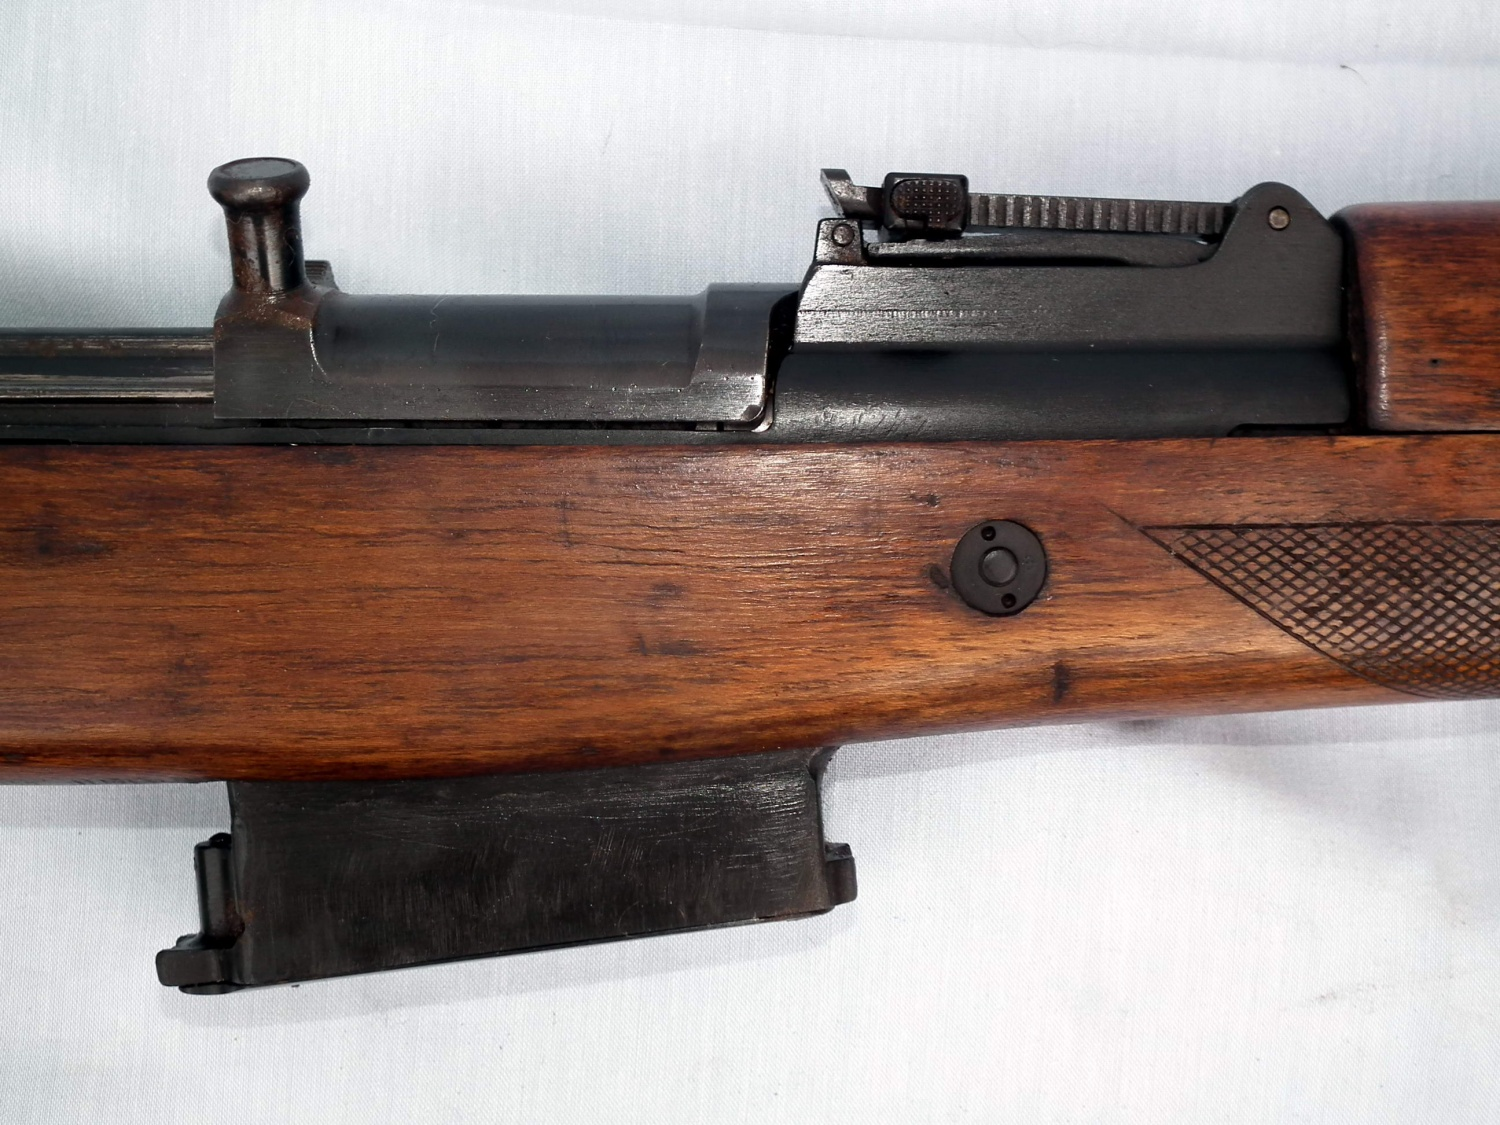 A closer view of the receiver area. Note that the bolt carrier's almost vertical charging handle is more similar to the one used in the earlier Walther G41(W) than to the G43's, which was more inclined to the left side.